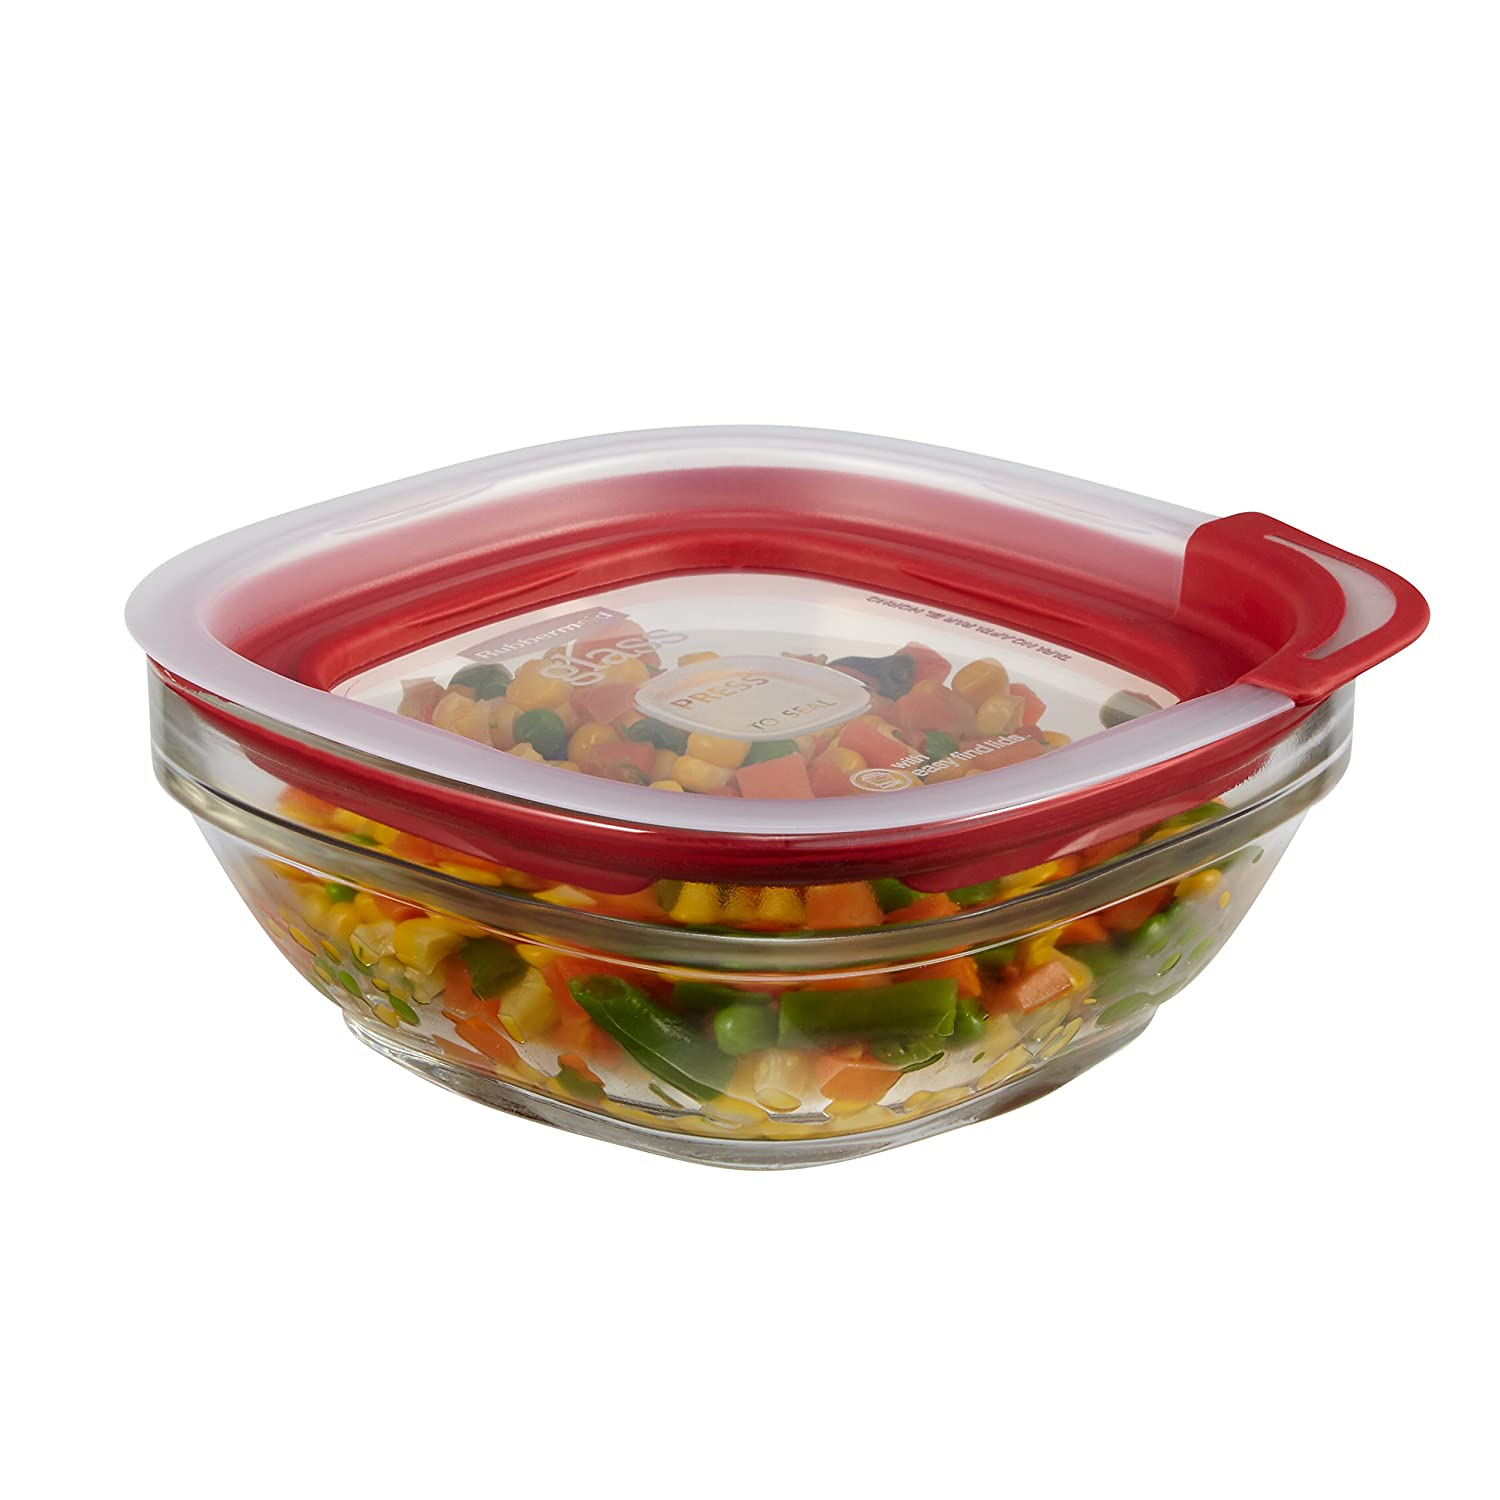 Rubbermaid Easy Find Lids Glass Food Storage Container, 2.5 Cup, Racer Red 1823643